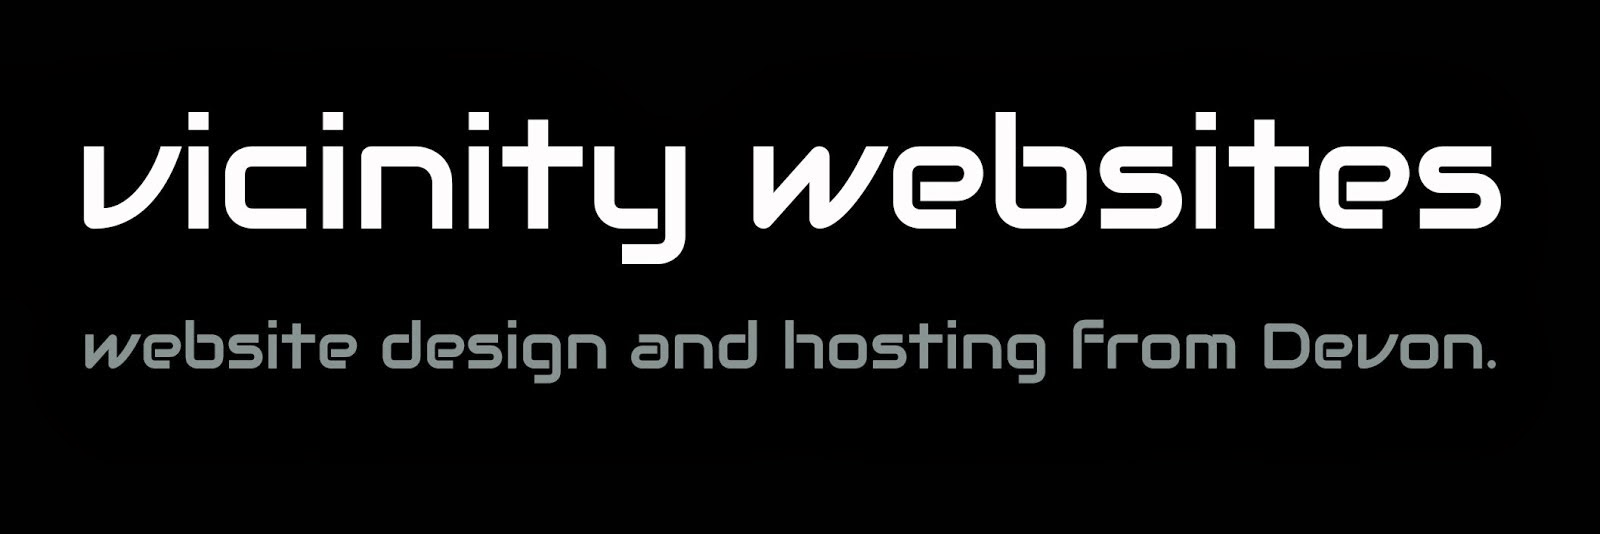 Vicinity Websites